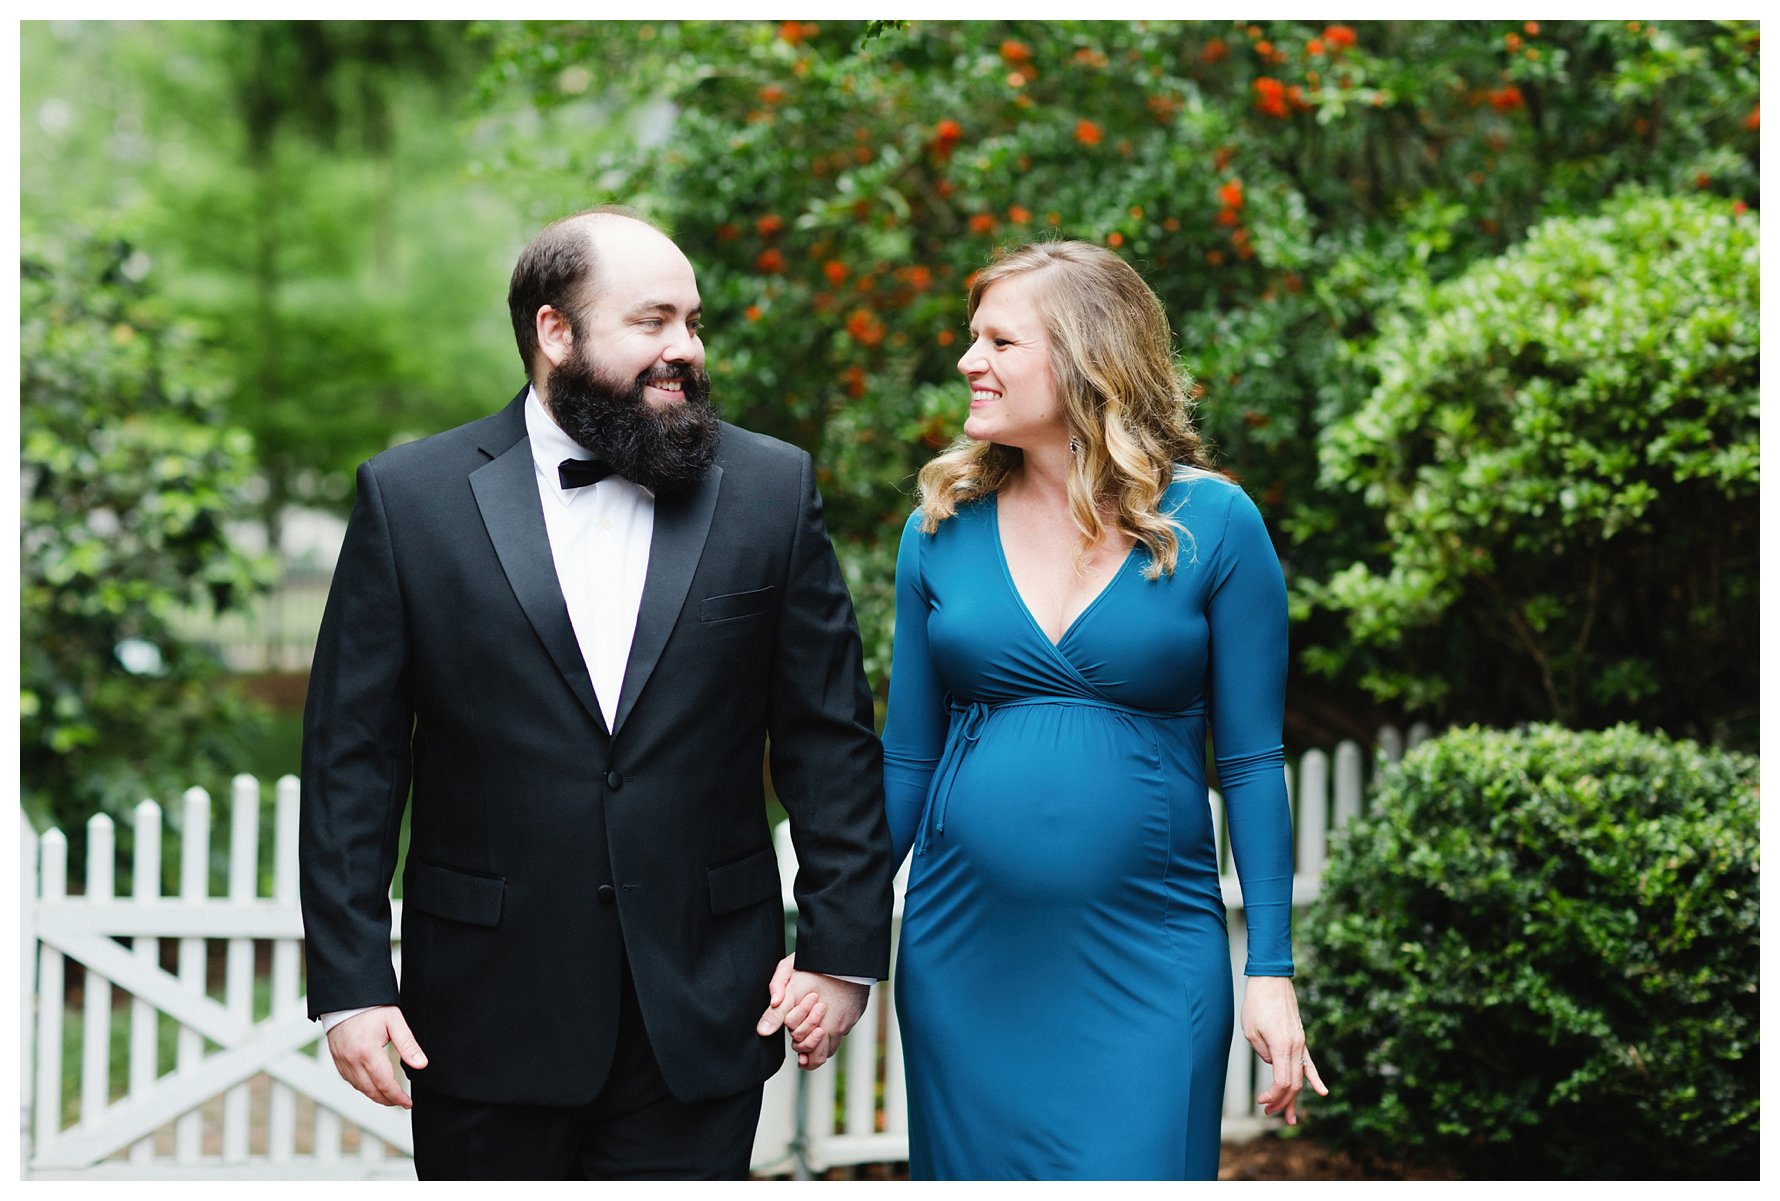 Raleigh_NC_Formal_Maternity_Photography_Blue_Black_Tie_0008